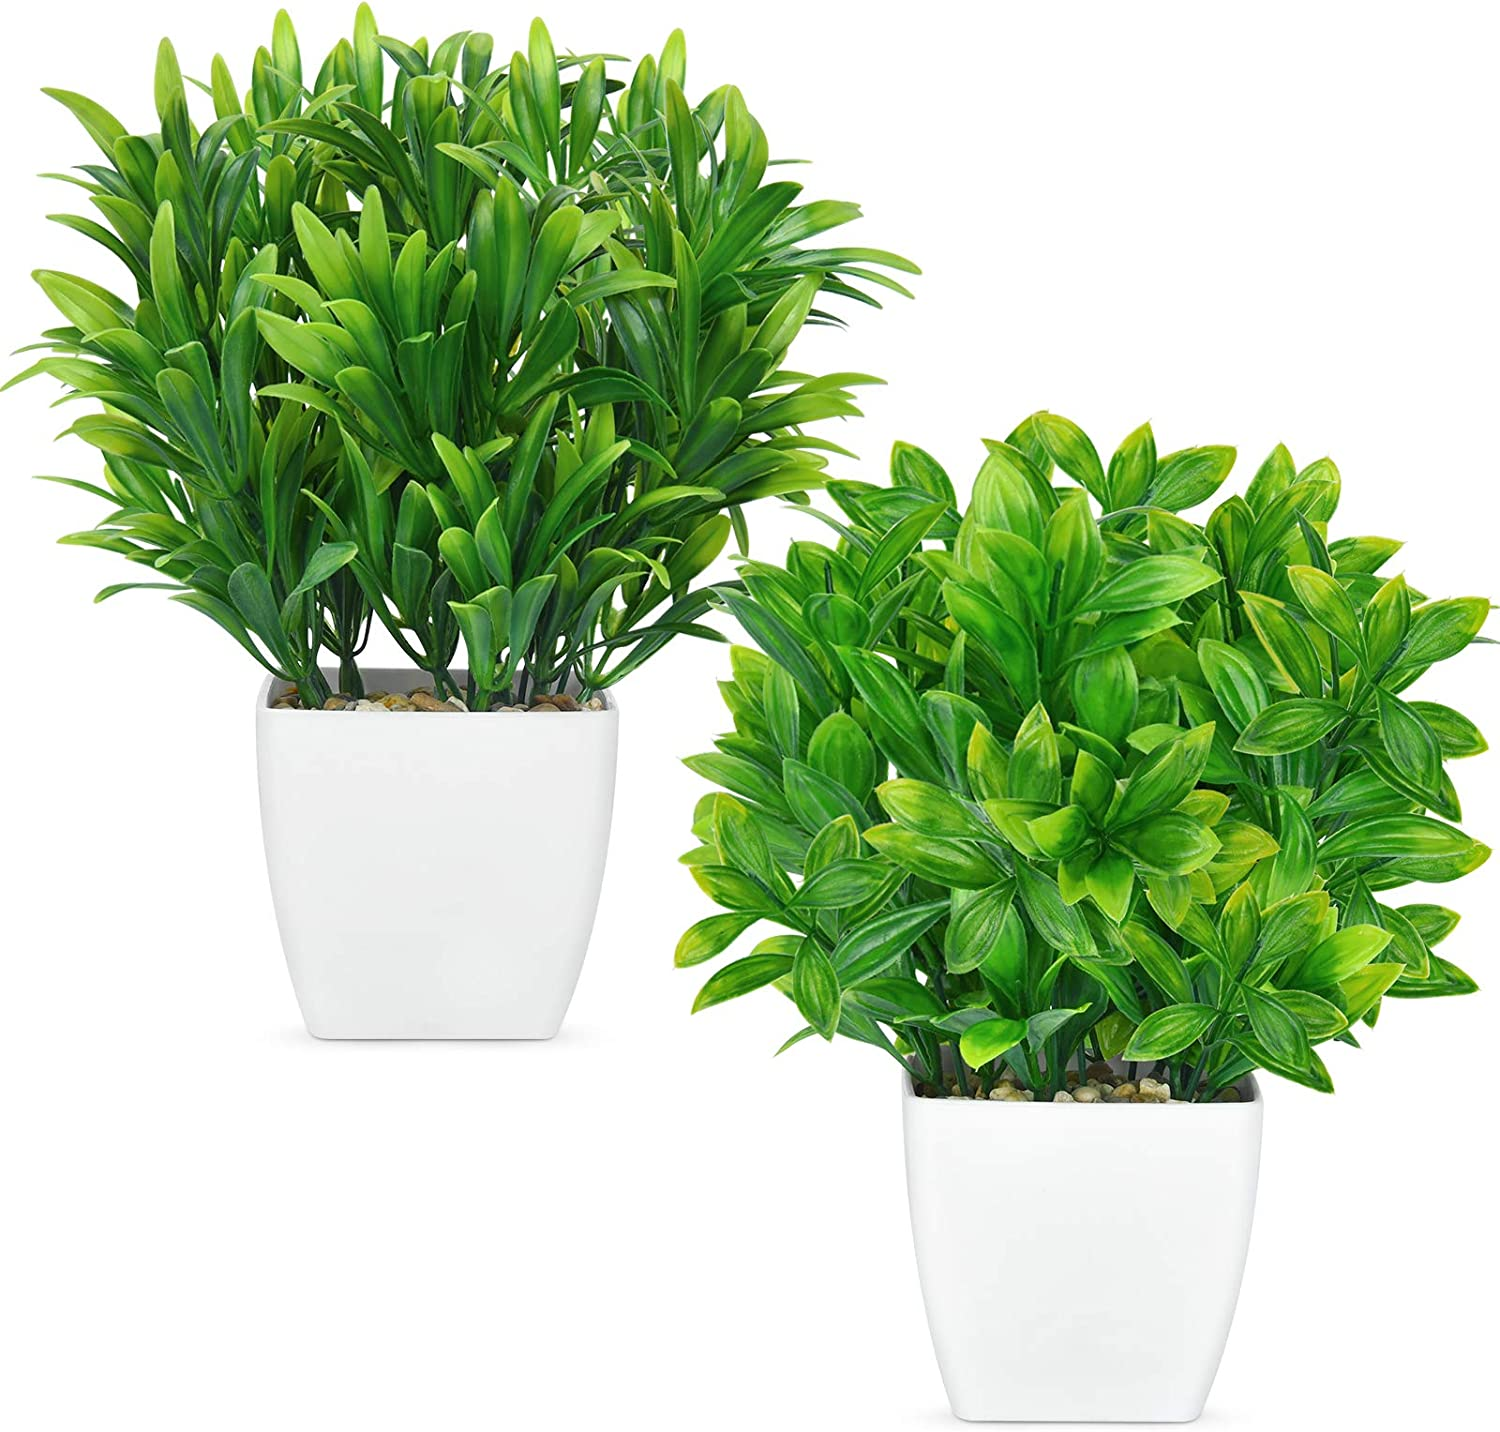 Shiny Flower 2 Pack Artificial Eucalyptus Plants in Pots Mini Green Faux Potted Plants with Plastic White Vase Fake Aloe Grass for Home Indoor, Office, Desk, Table Bathroom Bedroom Decor